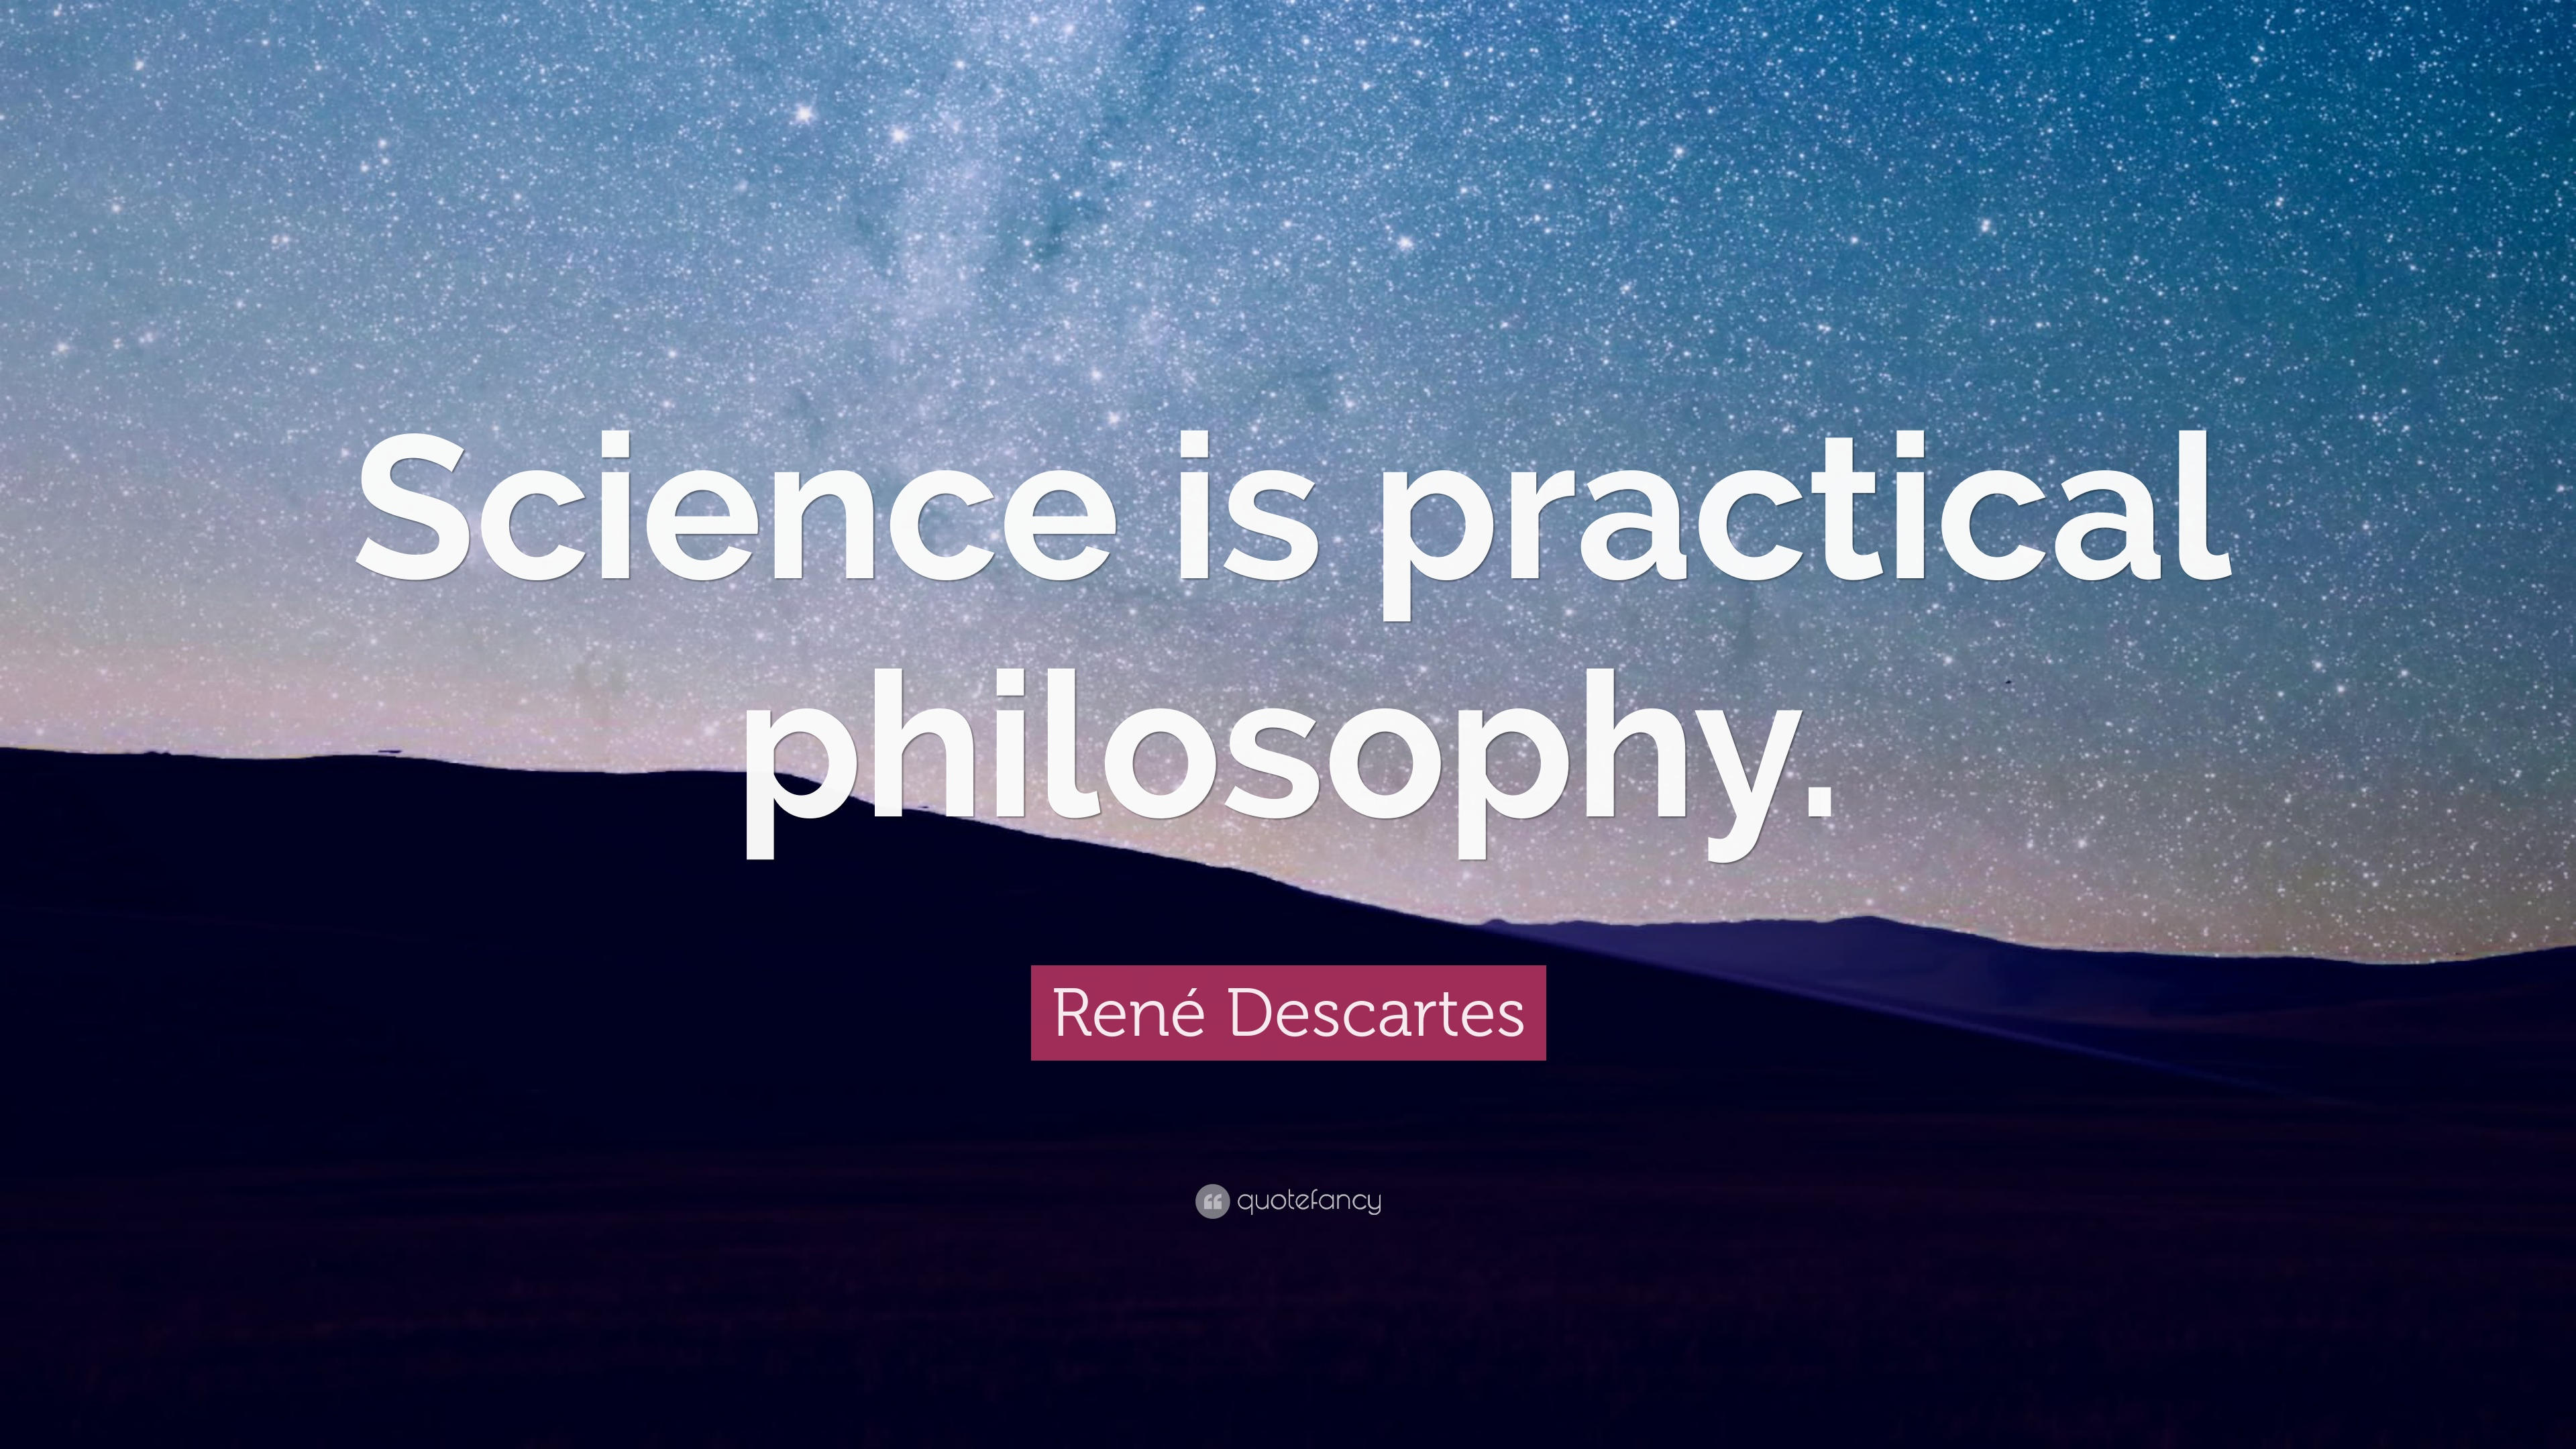 descartes essay philosophy rene science René descartes, who was interested in both science and philosophy, introduced his readers to the idea of separating academic knowledge from religious doctrine he claimed.